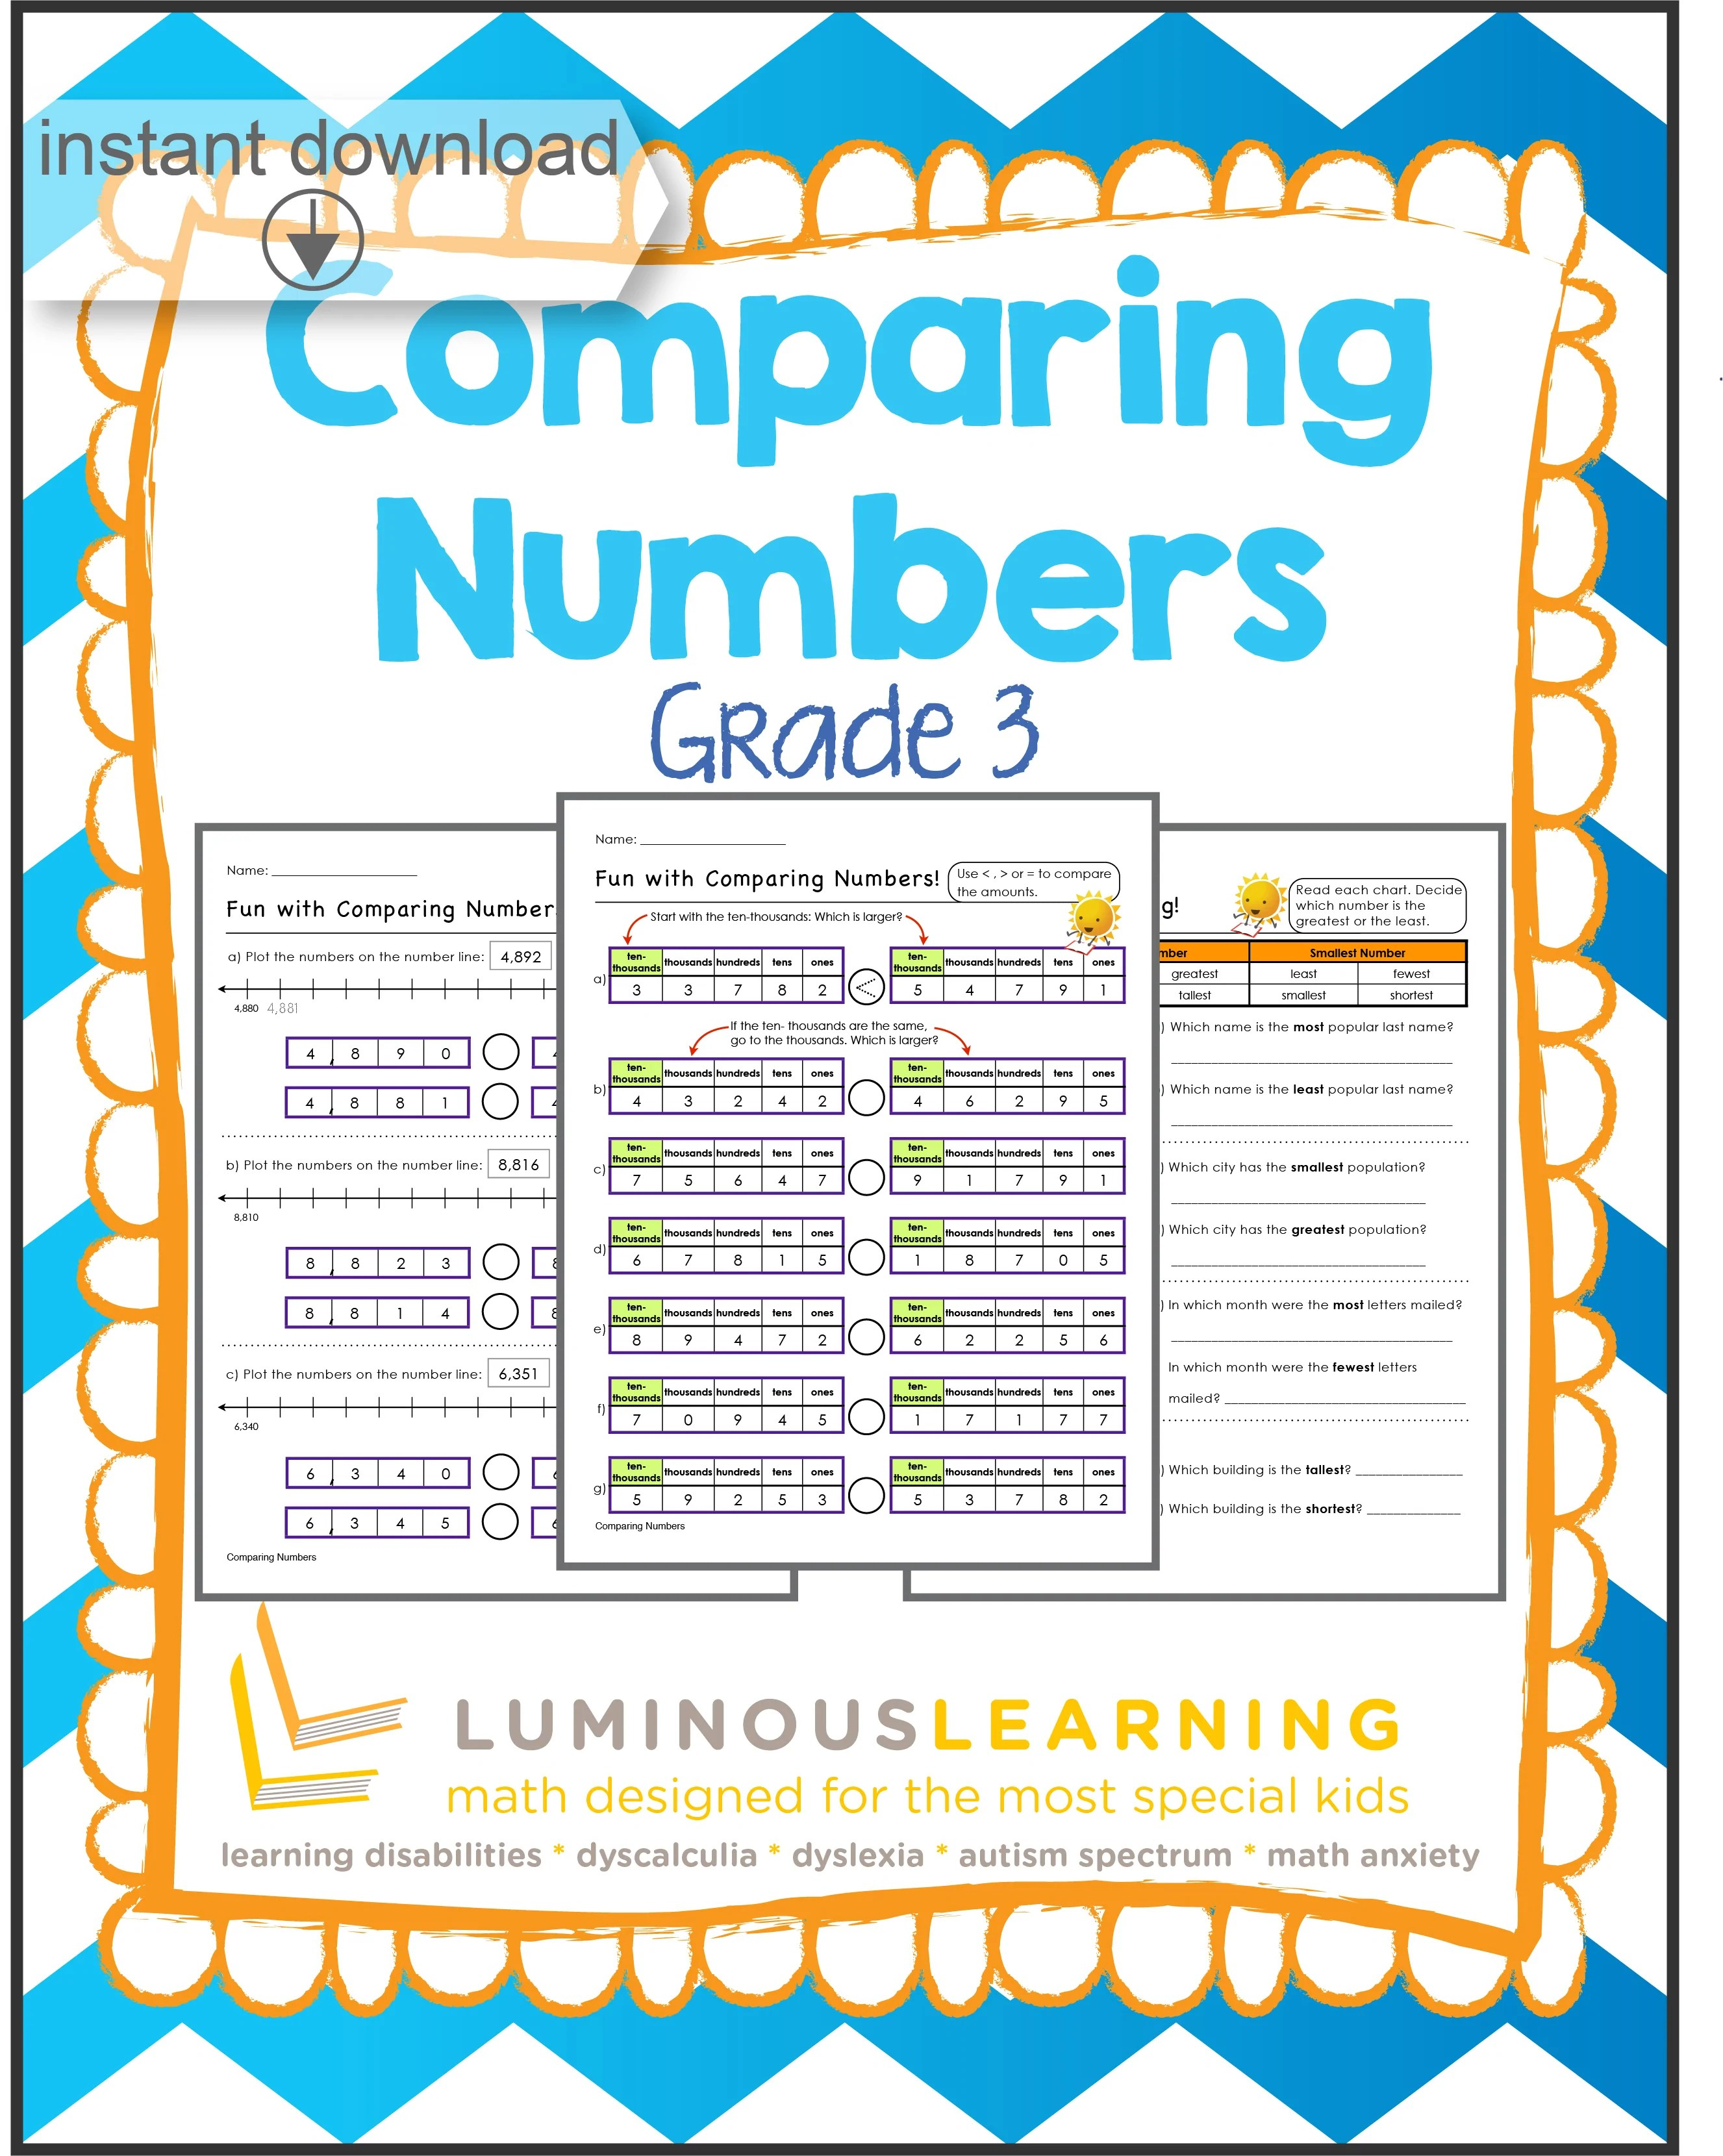 Grade 3 Comparing Numbers: Printable Workbook [ 3320 x 2653 Pixel ]